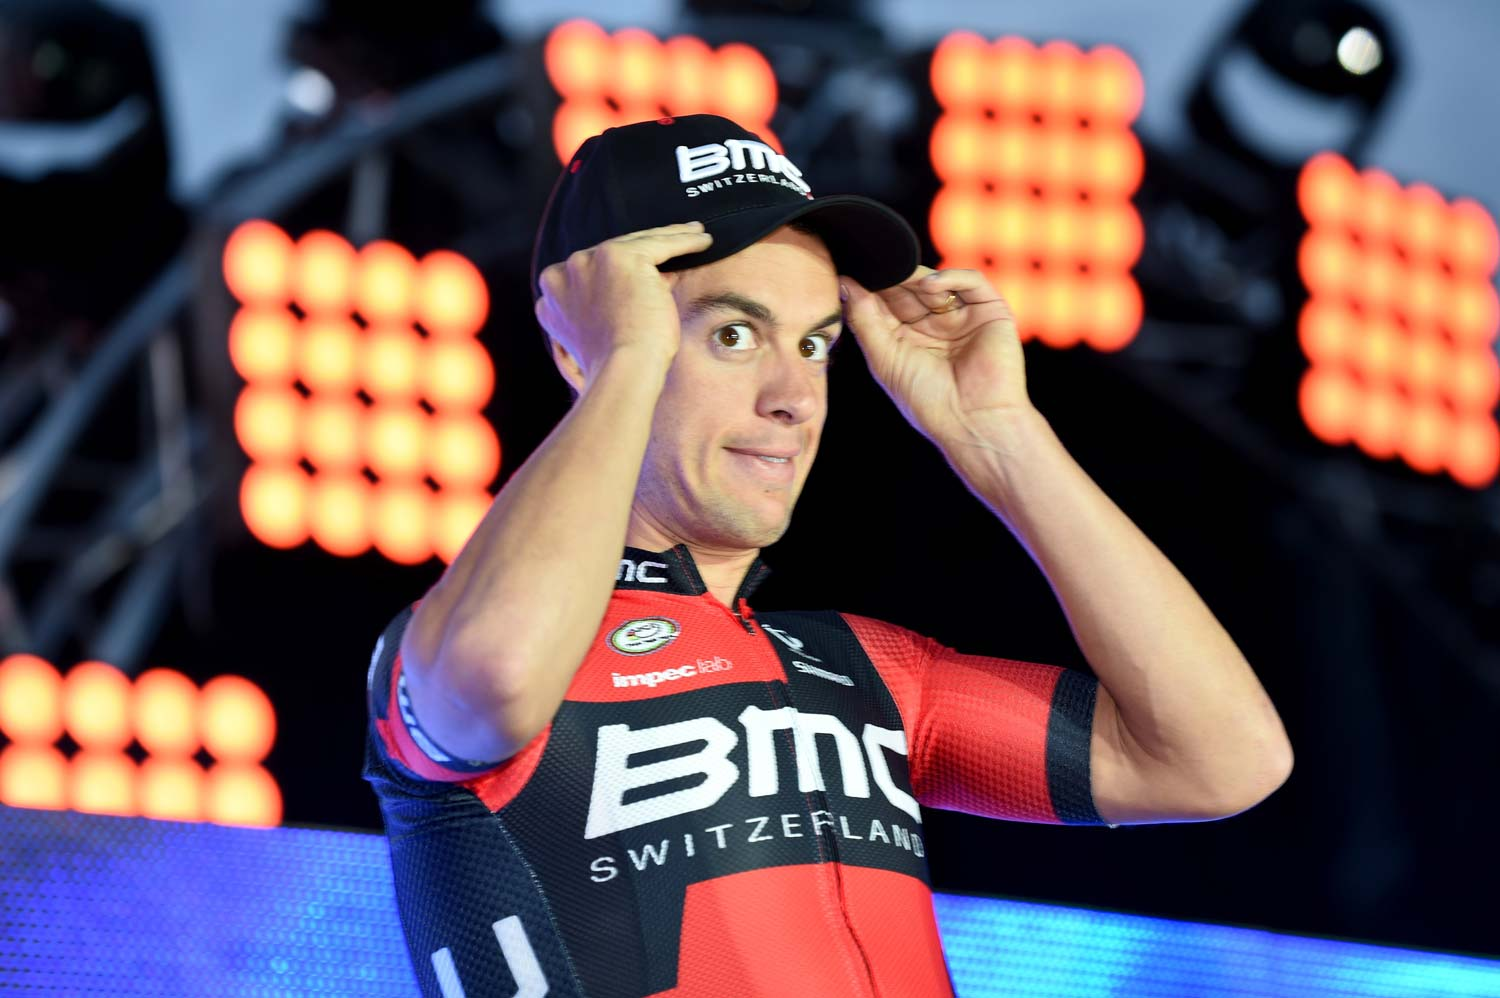 Le tour 2016 richie porte interview pt 2 ride media for Richie porte